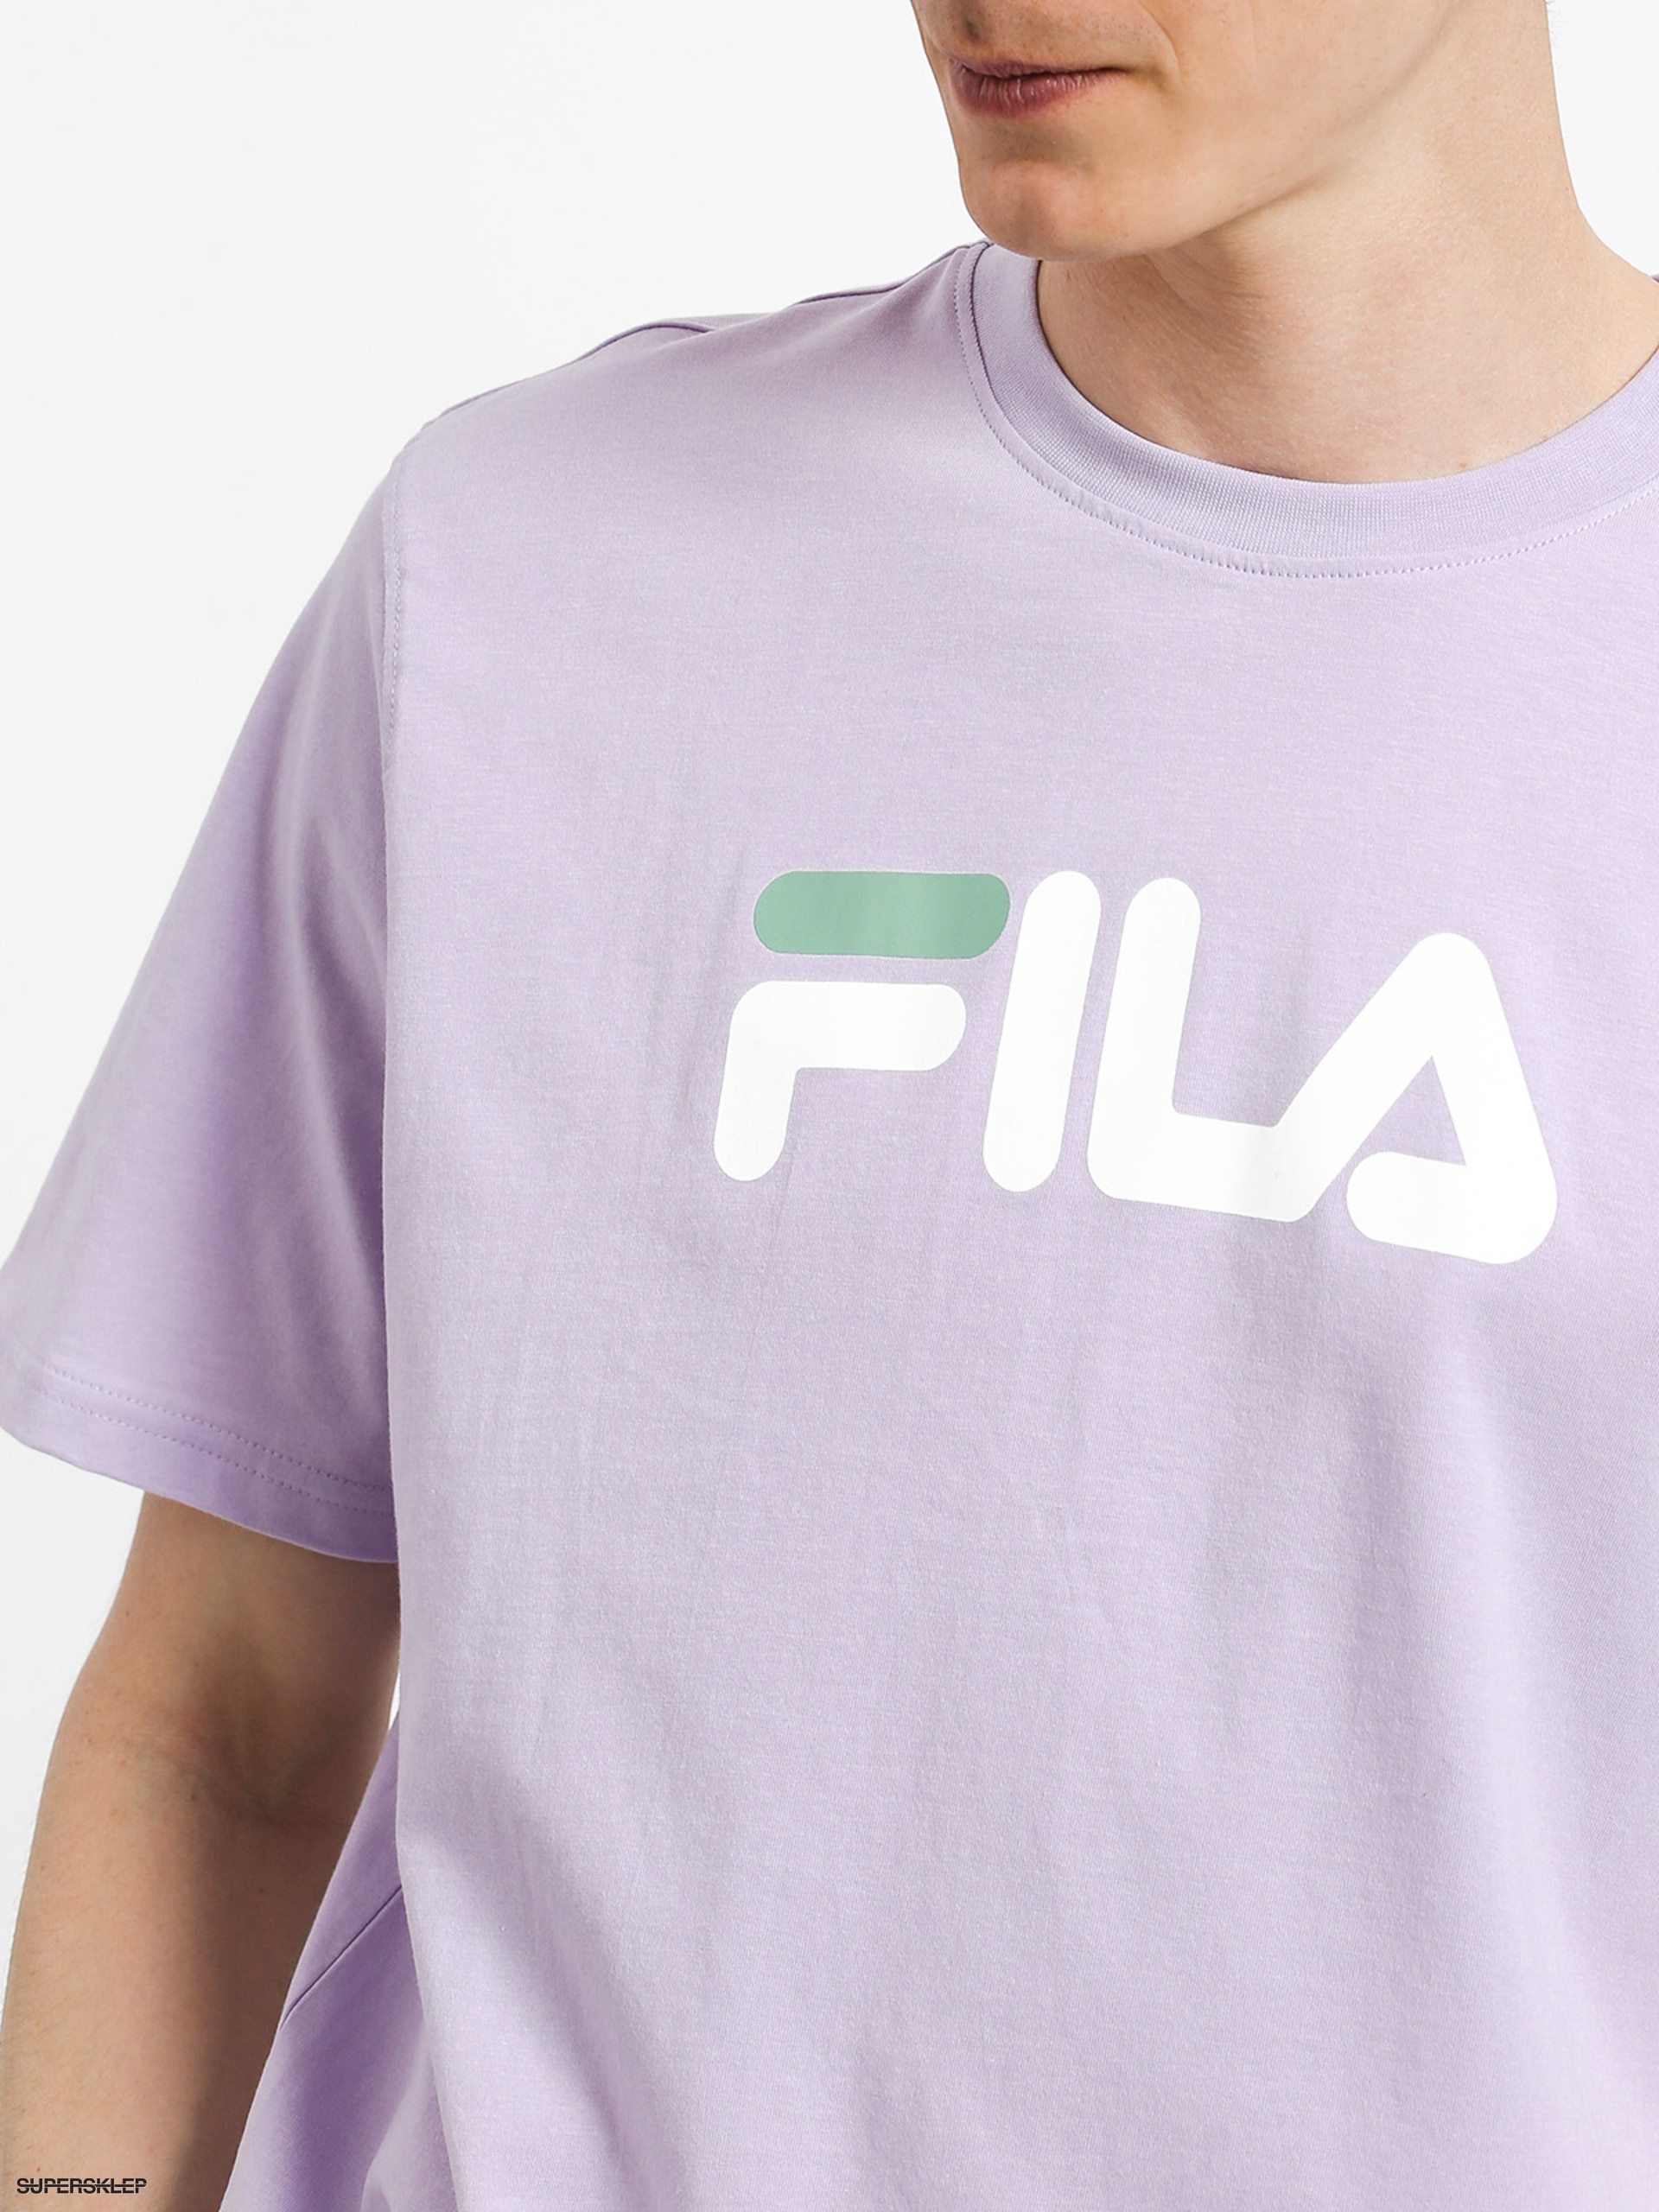 Fila Eagle t shirt with large logo in white